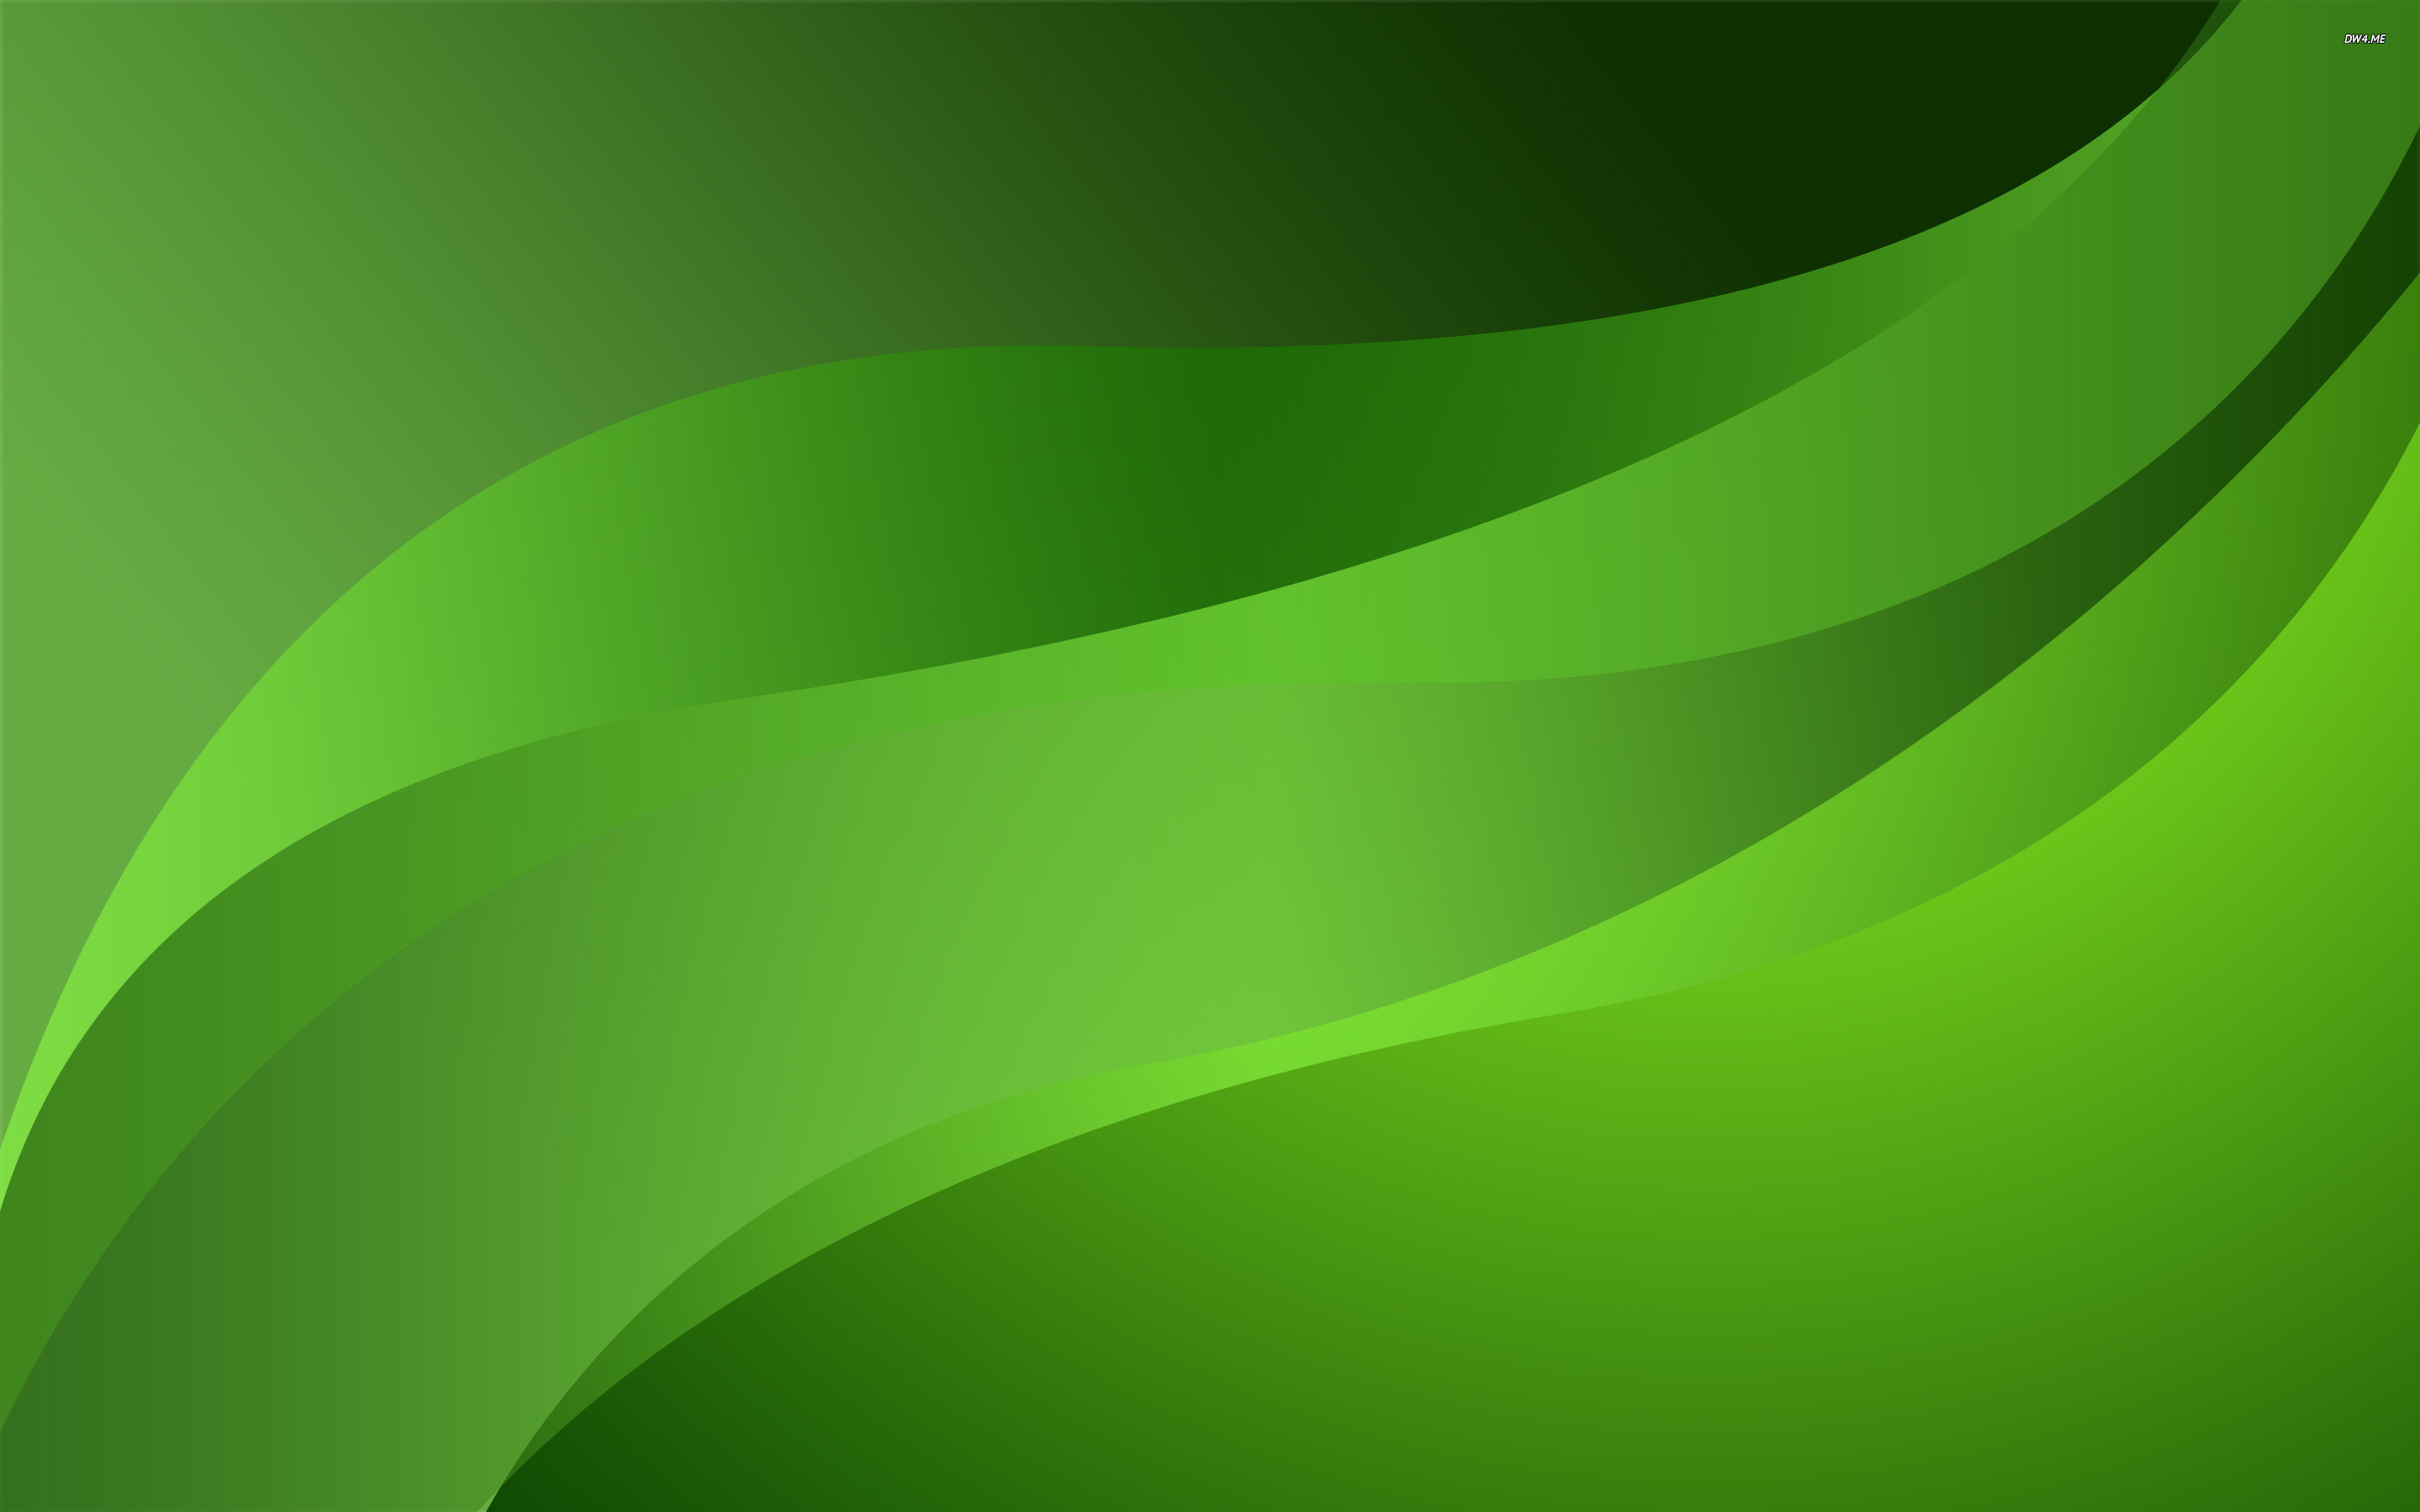 Green Desktop Wallpaper